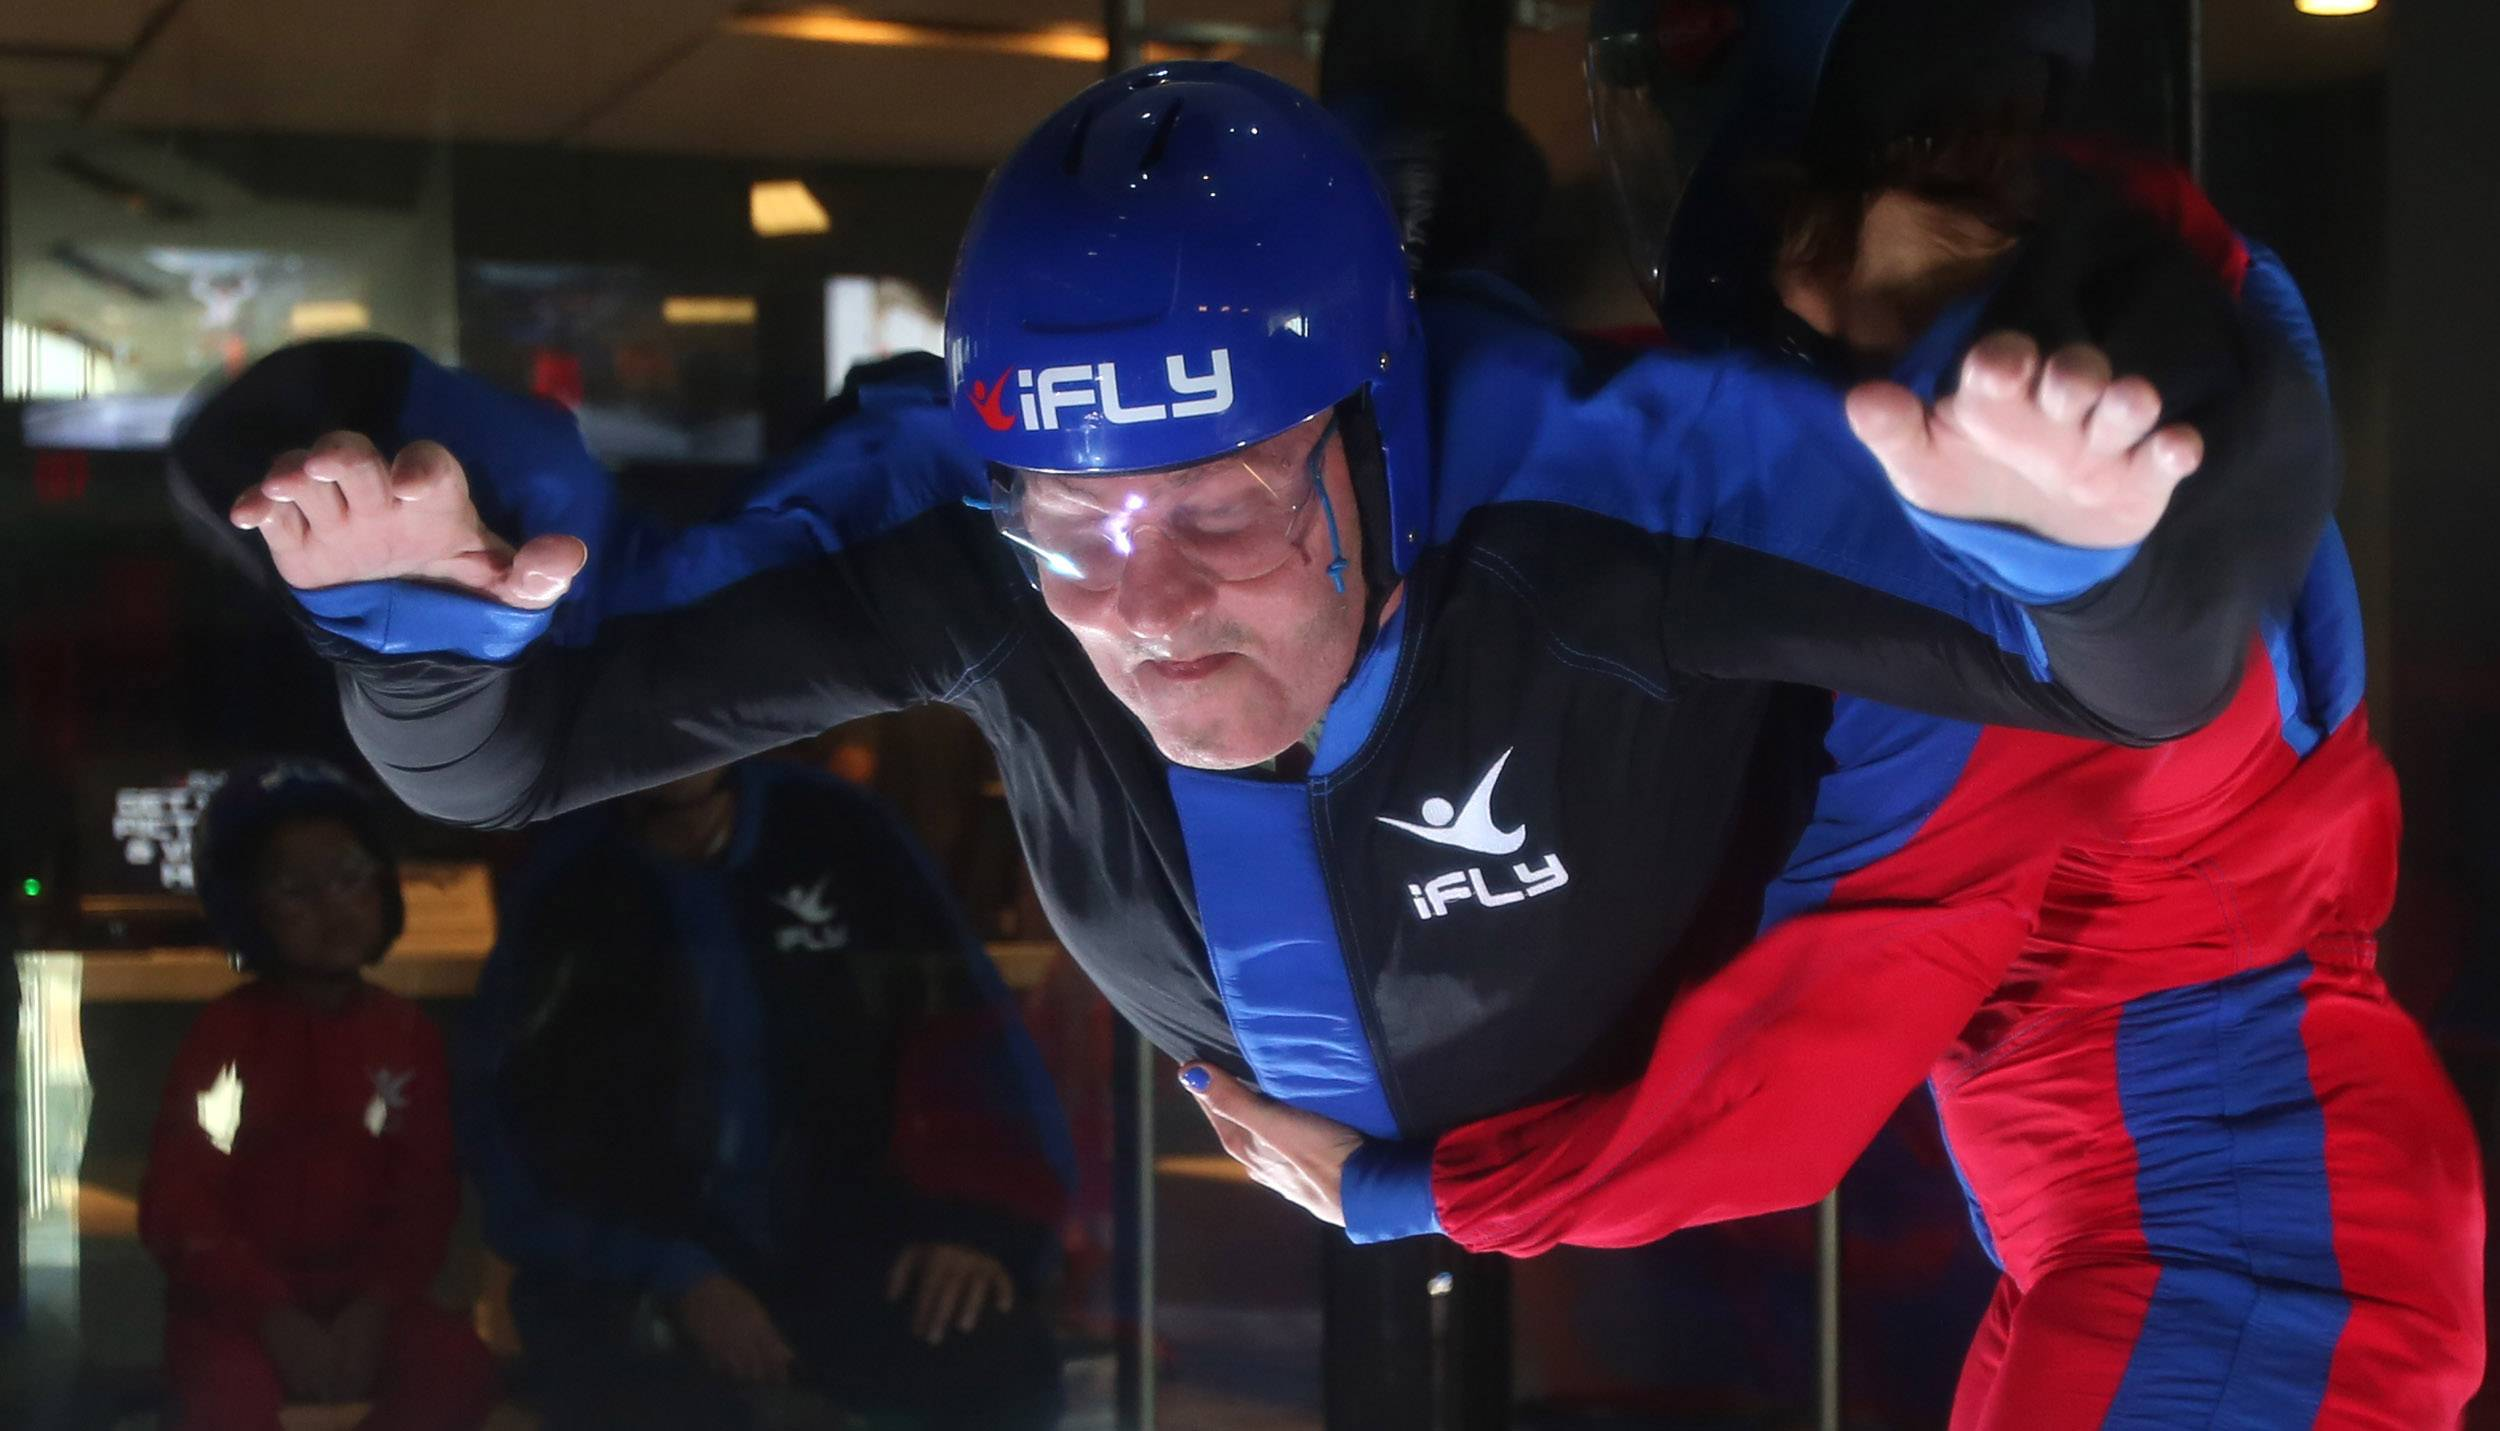 Otto Becker, 67, of Aurora is blind but still wants to experience the rush of indoor sky diving at iFly in Naperville.